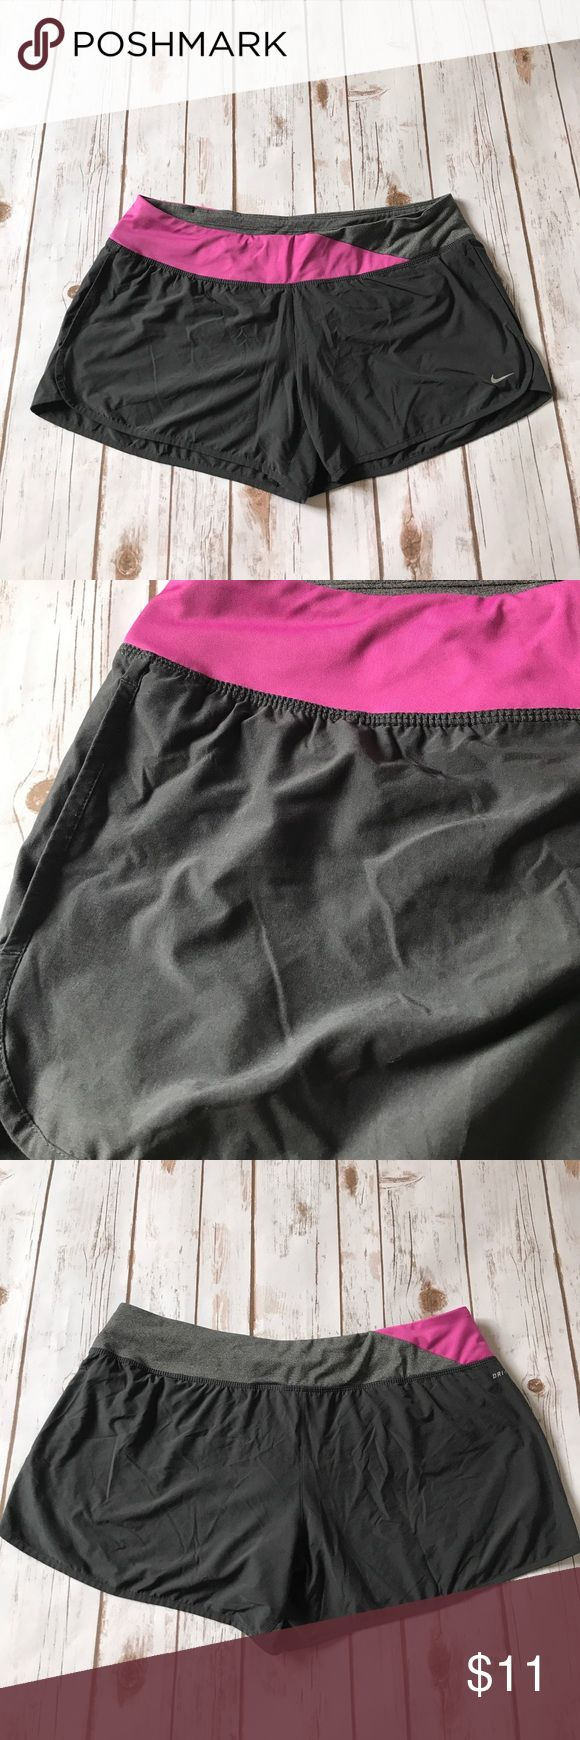 Nike Women Workout Shorts Size XL Grey/Pink Very comfortable shorts from Nike. Good condition. Nike Shorts